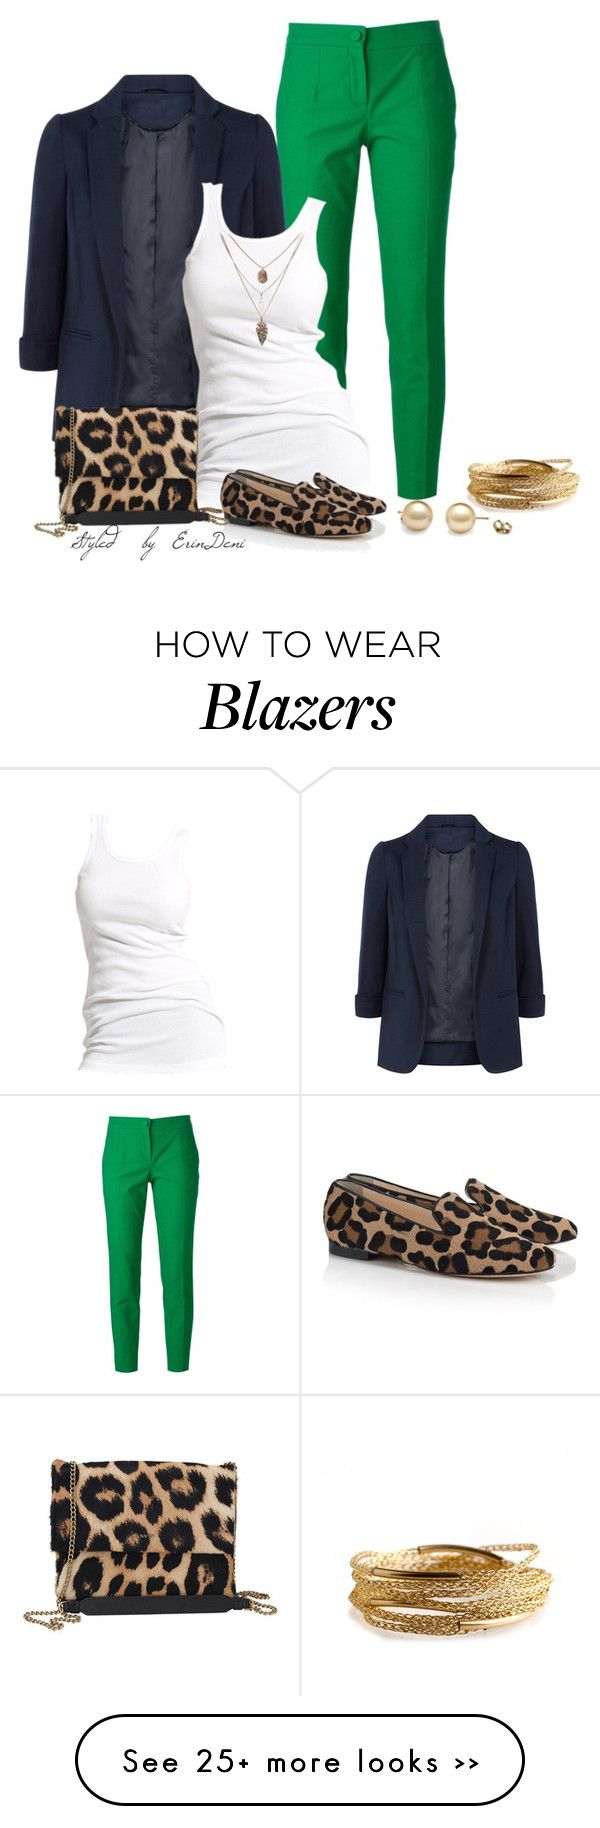 """Untitled #787"" by erindfashionista on Polyvore"